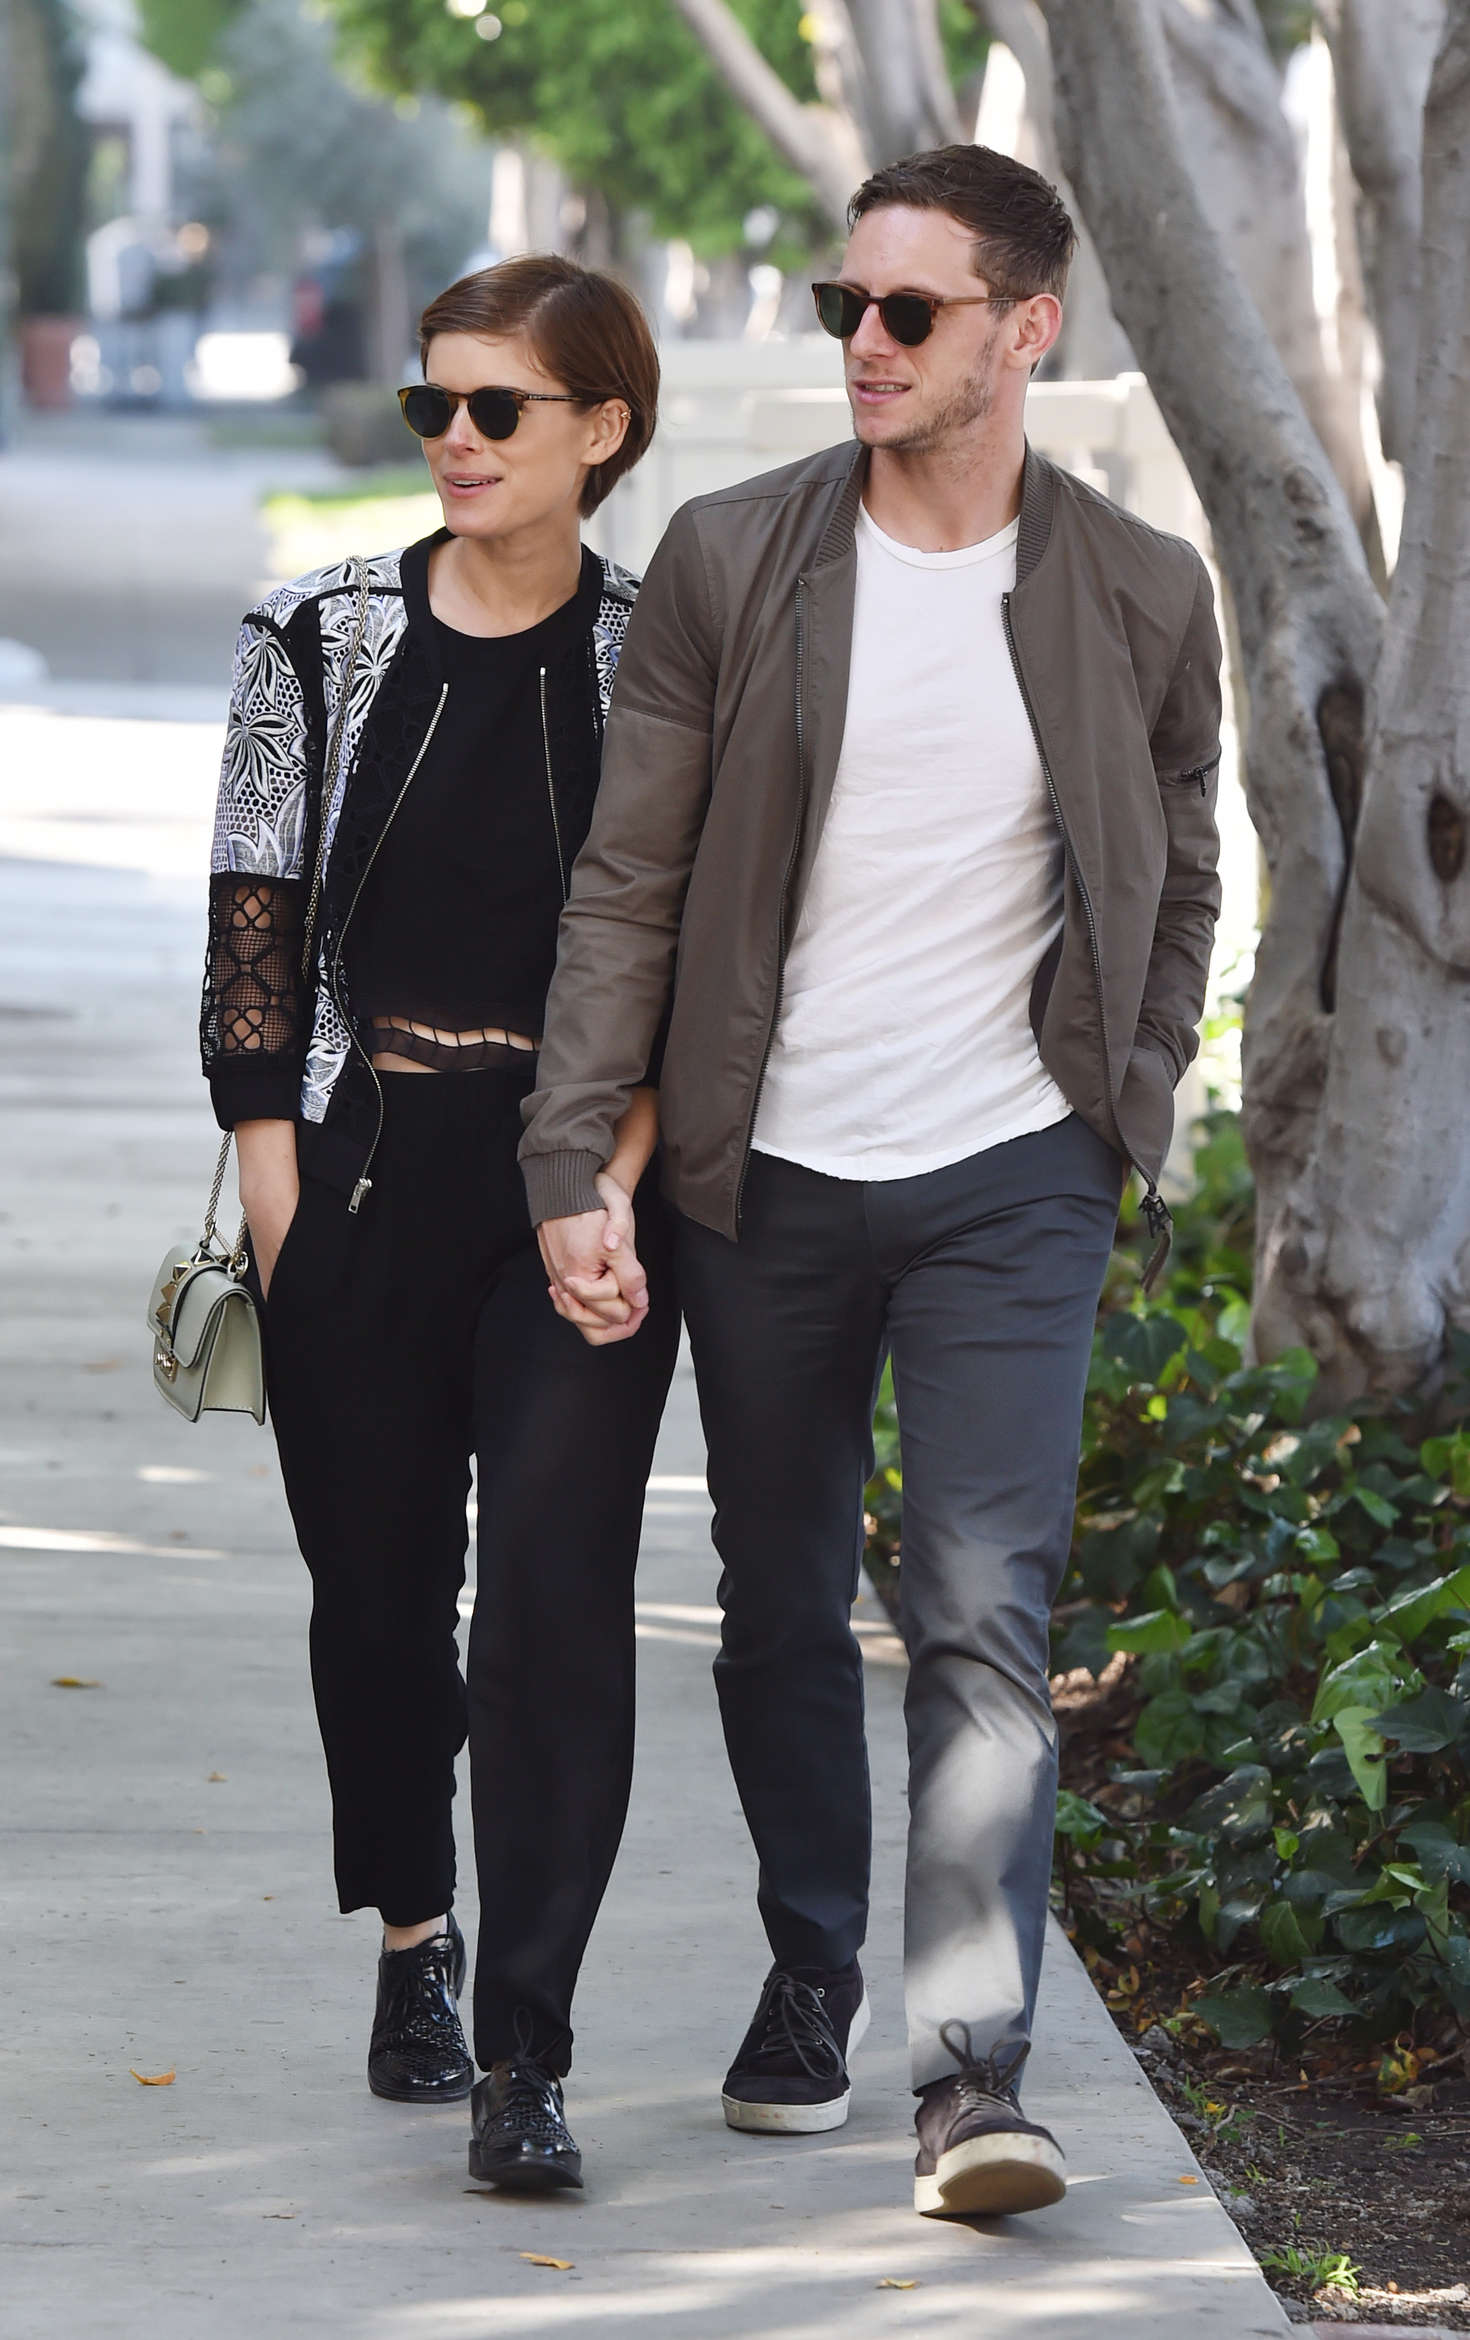 Kate Mara With Her Boyfriend Out In West Hollywood Gotceleb